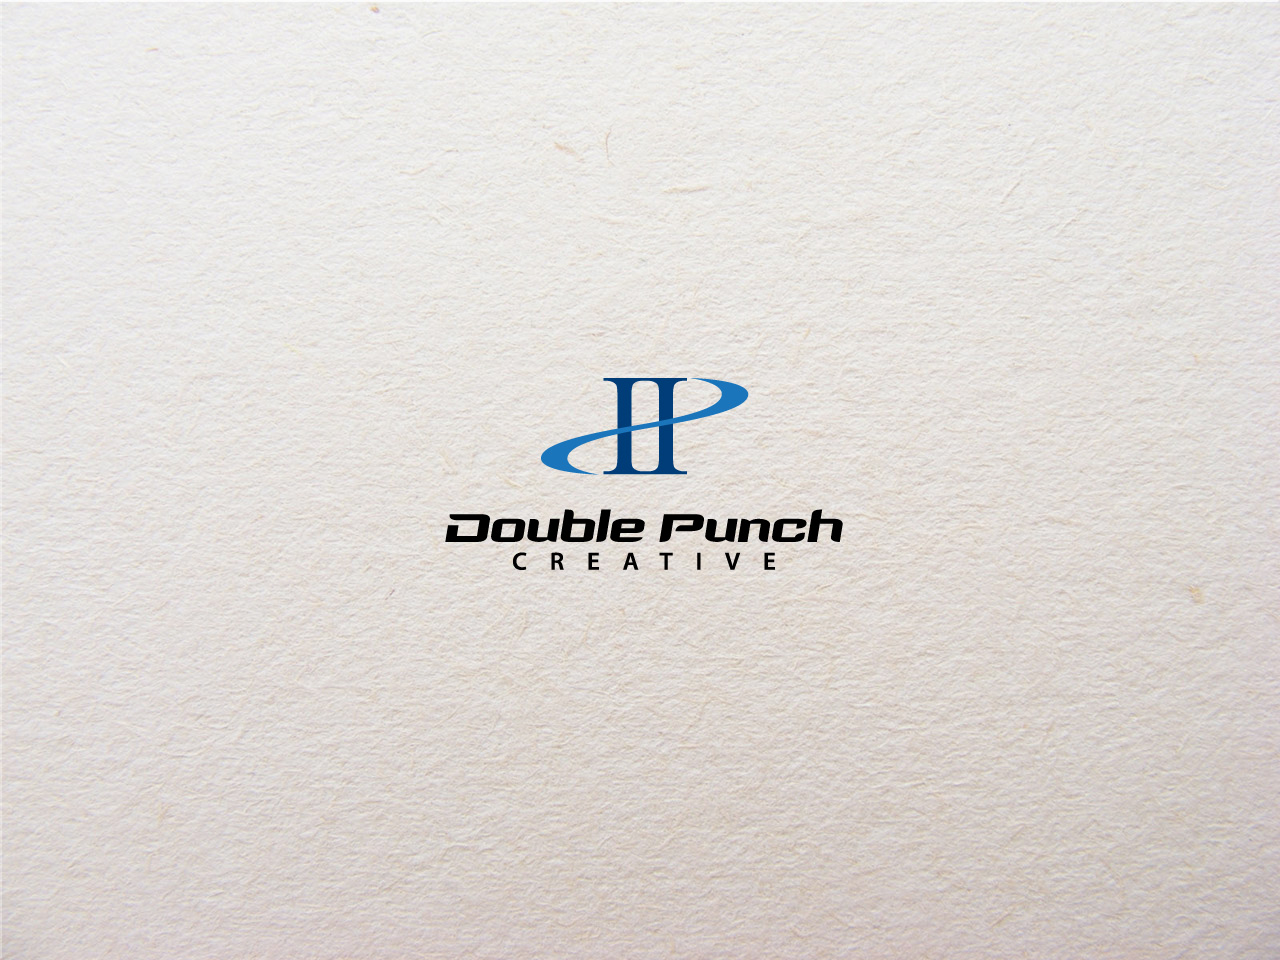 Logo Design by jpbituin - Entry No. 23 in the Logo Design Contest Unique Logo Design Wanted for Double Punch Creative.